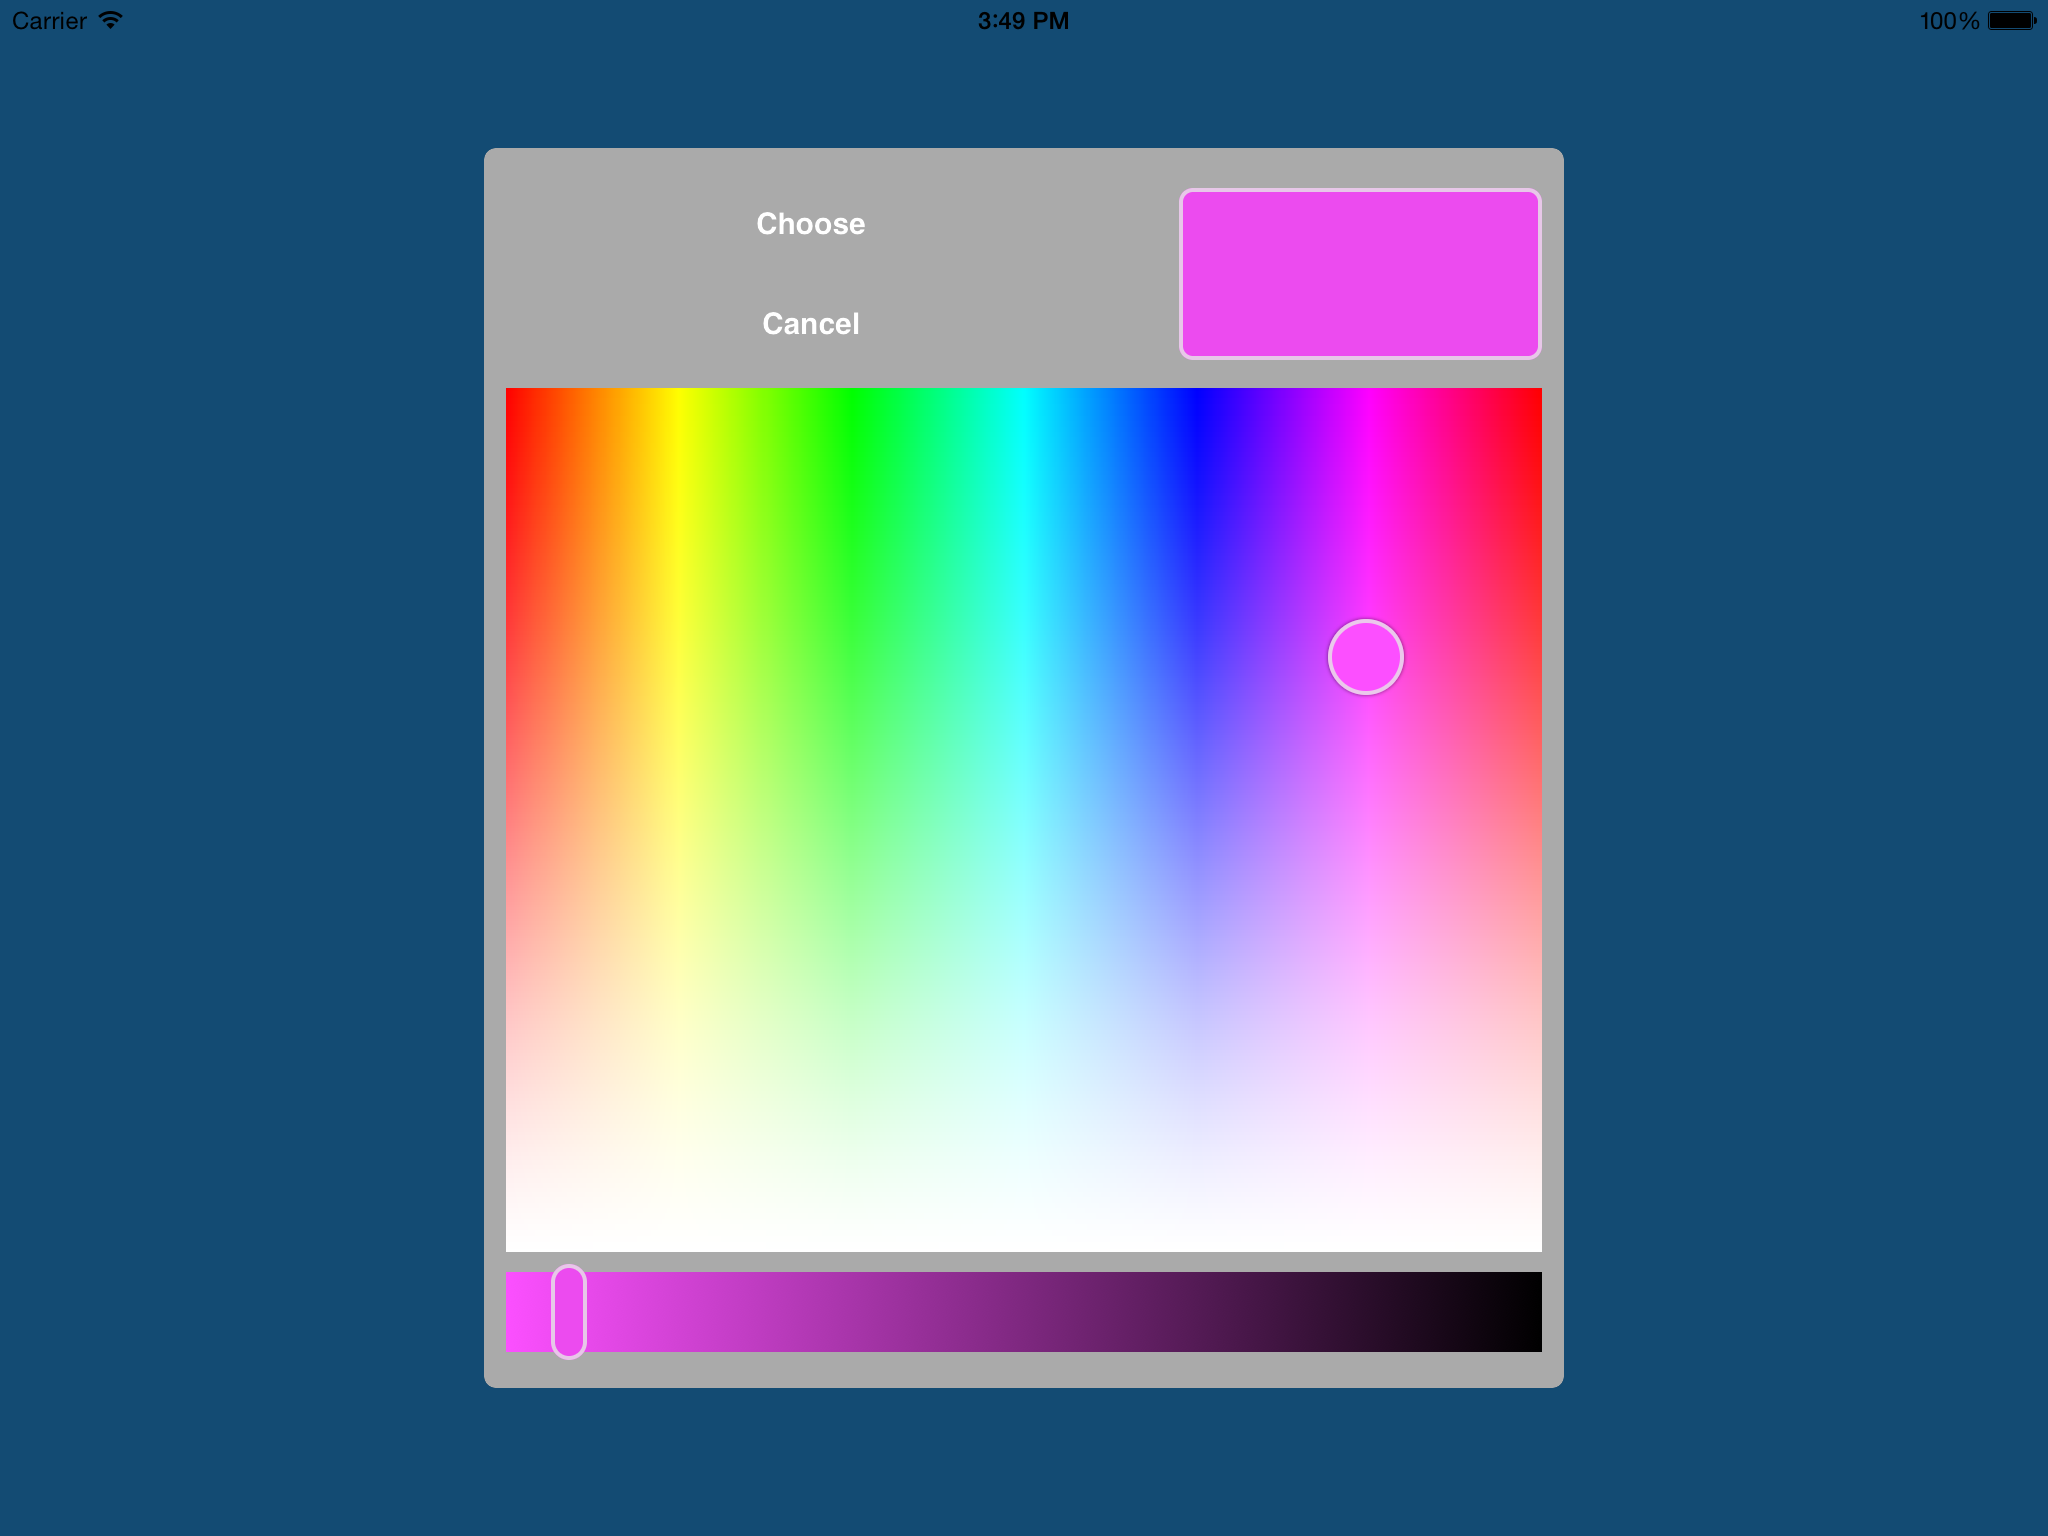 GitHub - fcanas/ios-color-picker: A color picker for iOS